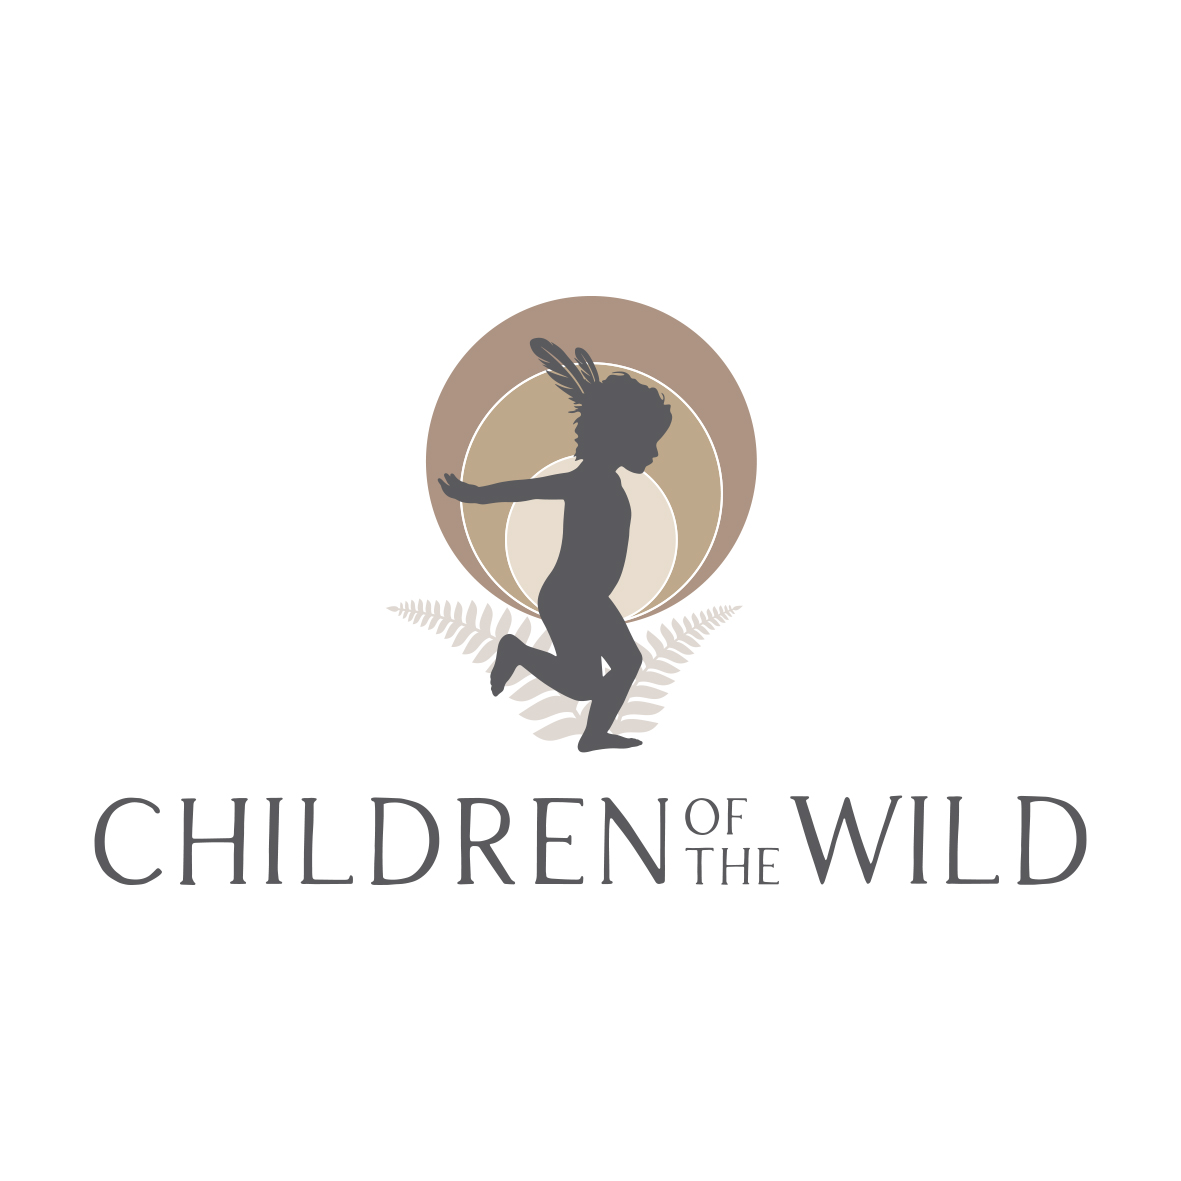 Kids logo design for Children of the Wild by Billie Hardy Creative